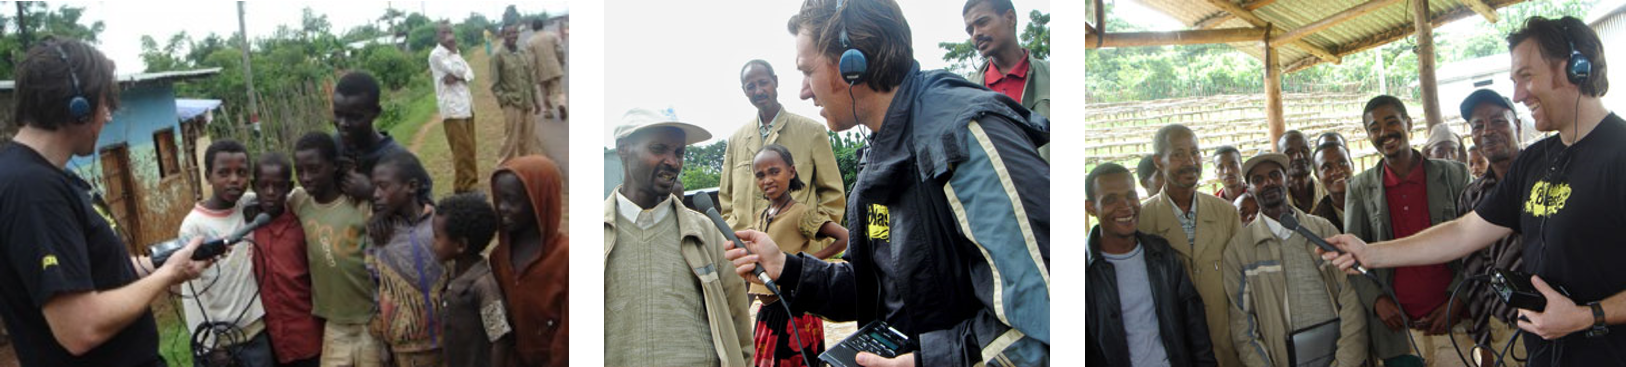 Radio is a medium that allows for almost anybody's participation. Source: RADIO FOR DEVELOPMENT (2010)